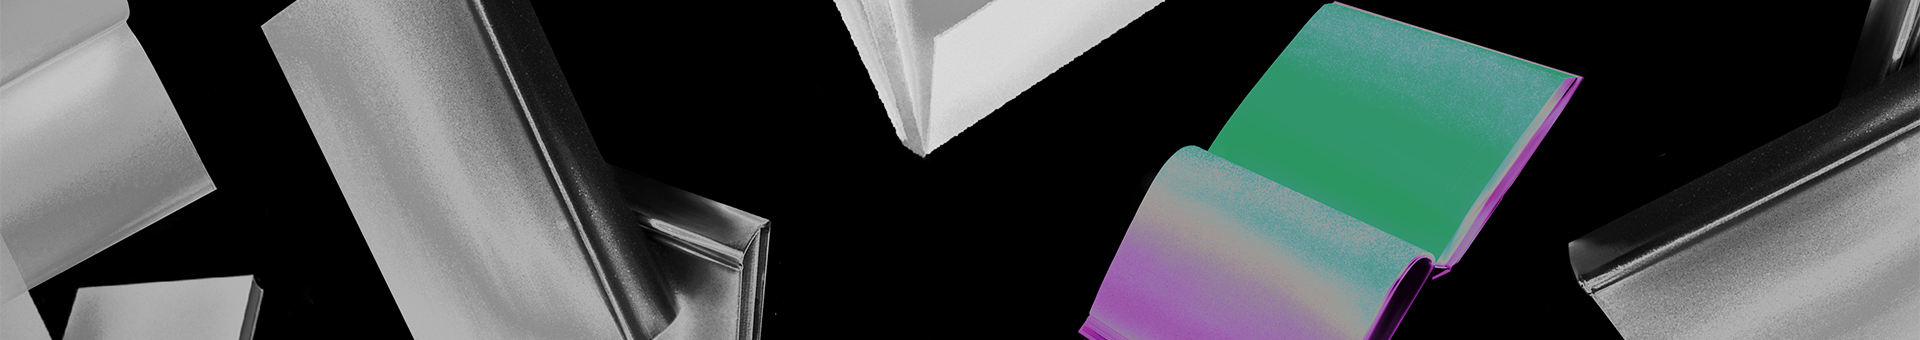 black and white floating books with second-to-last book in purple and green